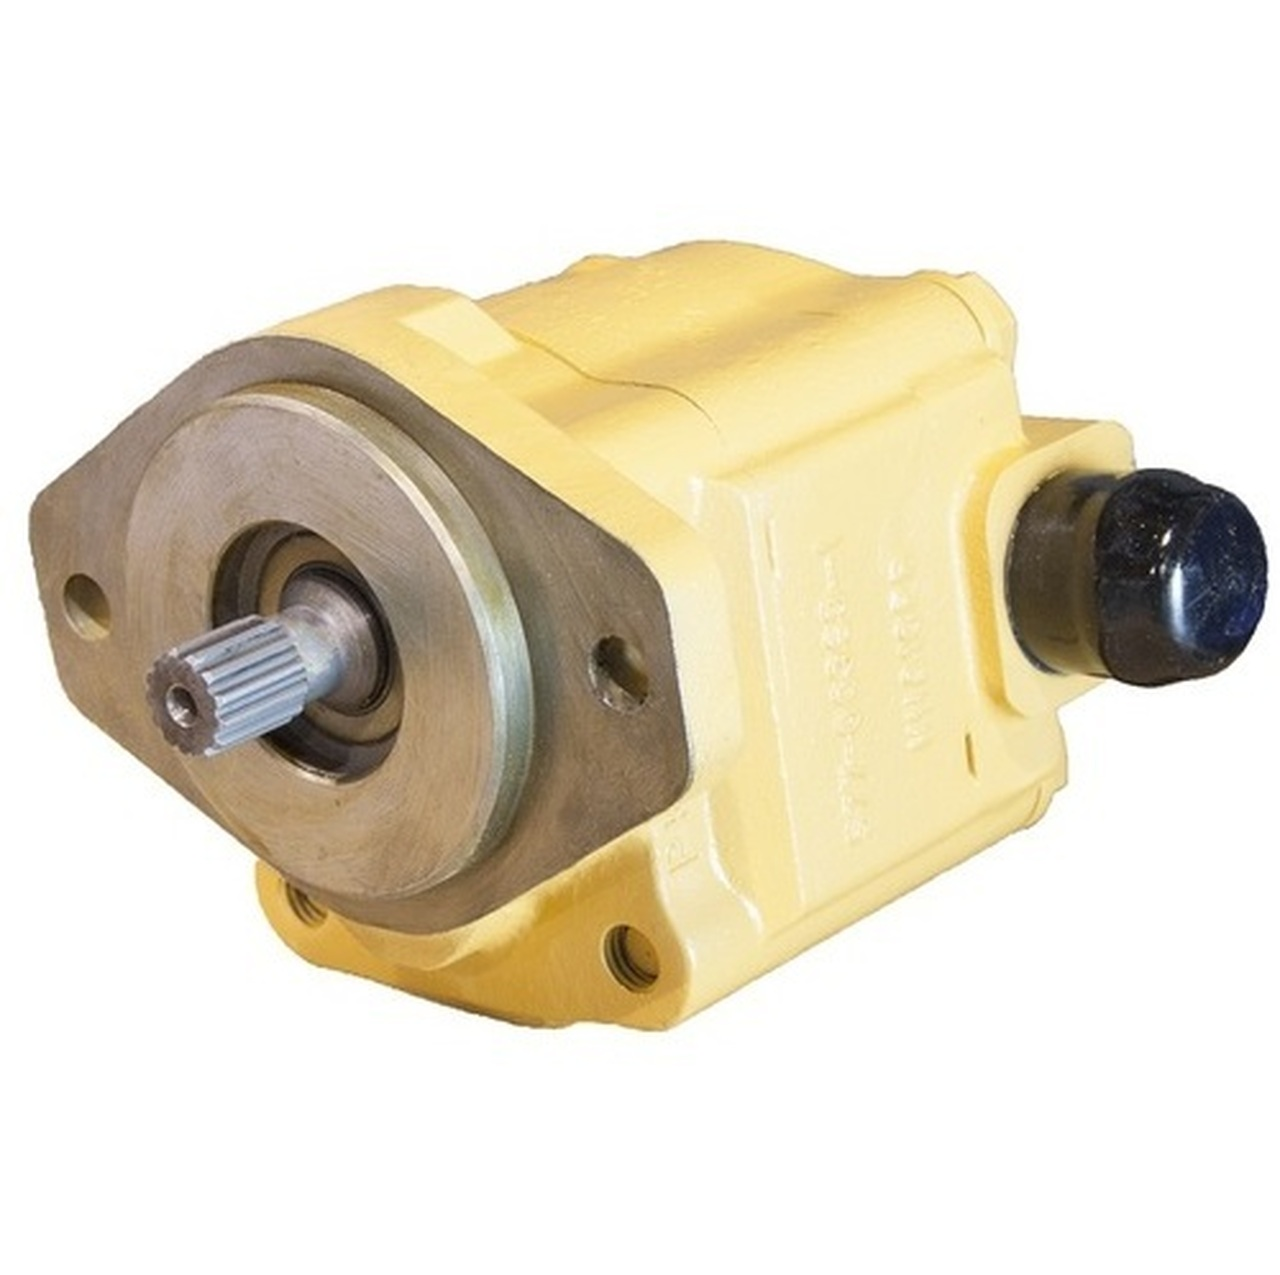 Backhoe Hydraulic Pump